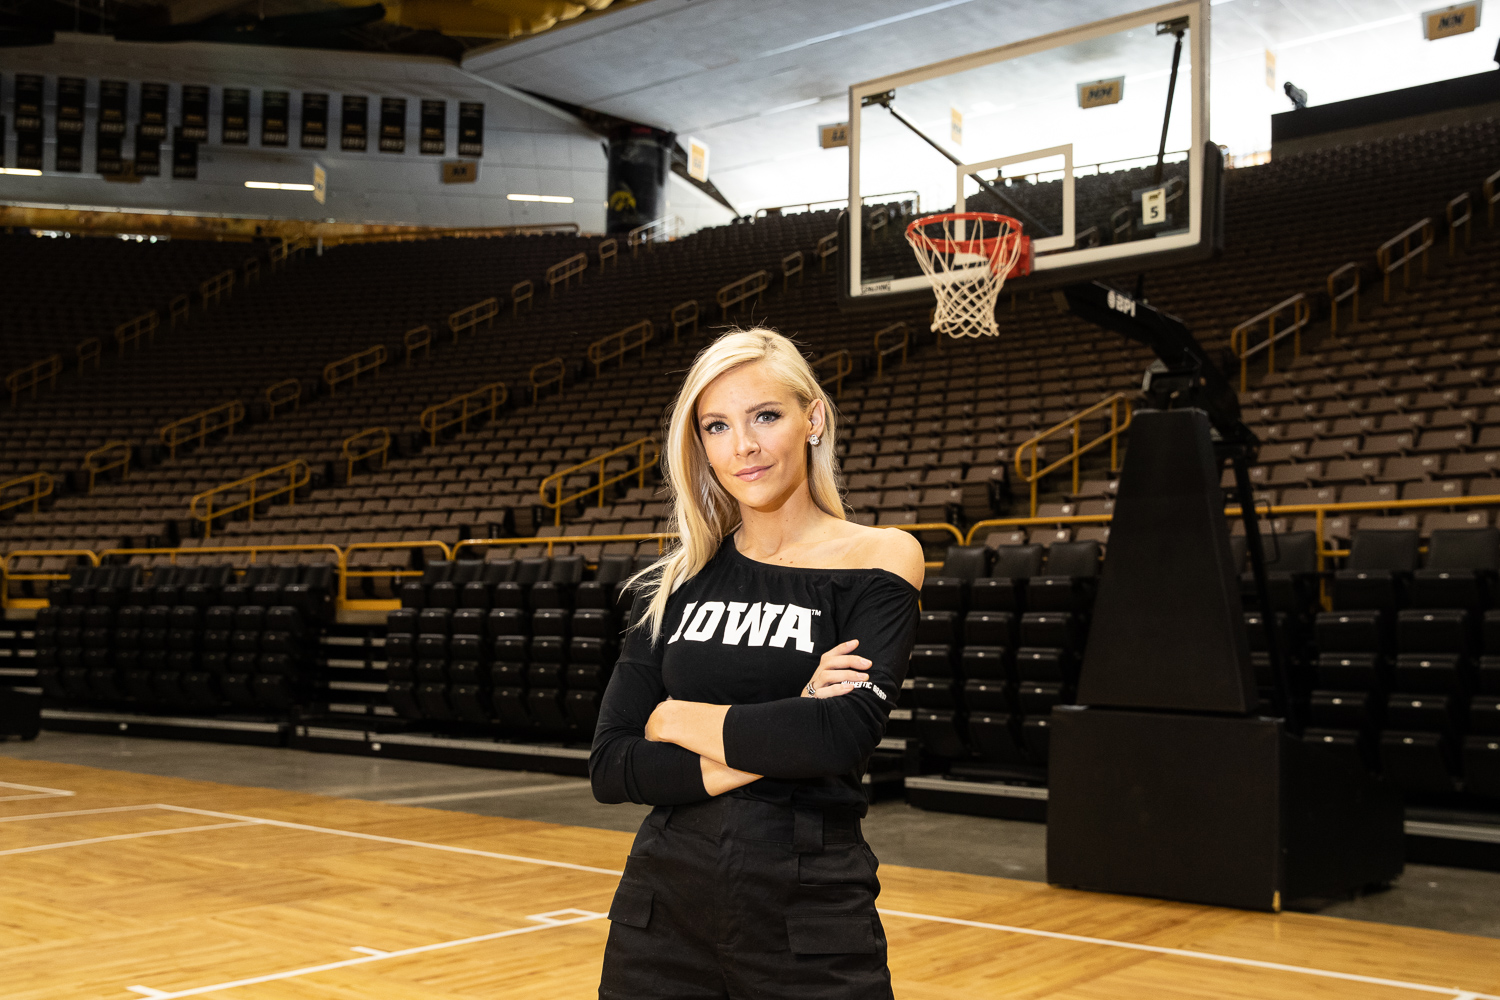 Hawkeye Sports host Laura Vandeberg poses for a portrait in Carver Hawkeye Arena on Thursday, June 13, 2019. (Wyatt Dlouhy/The Daily Iowan)